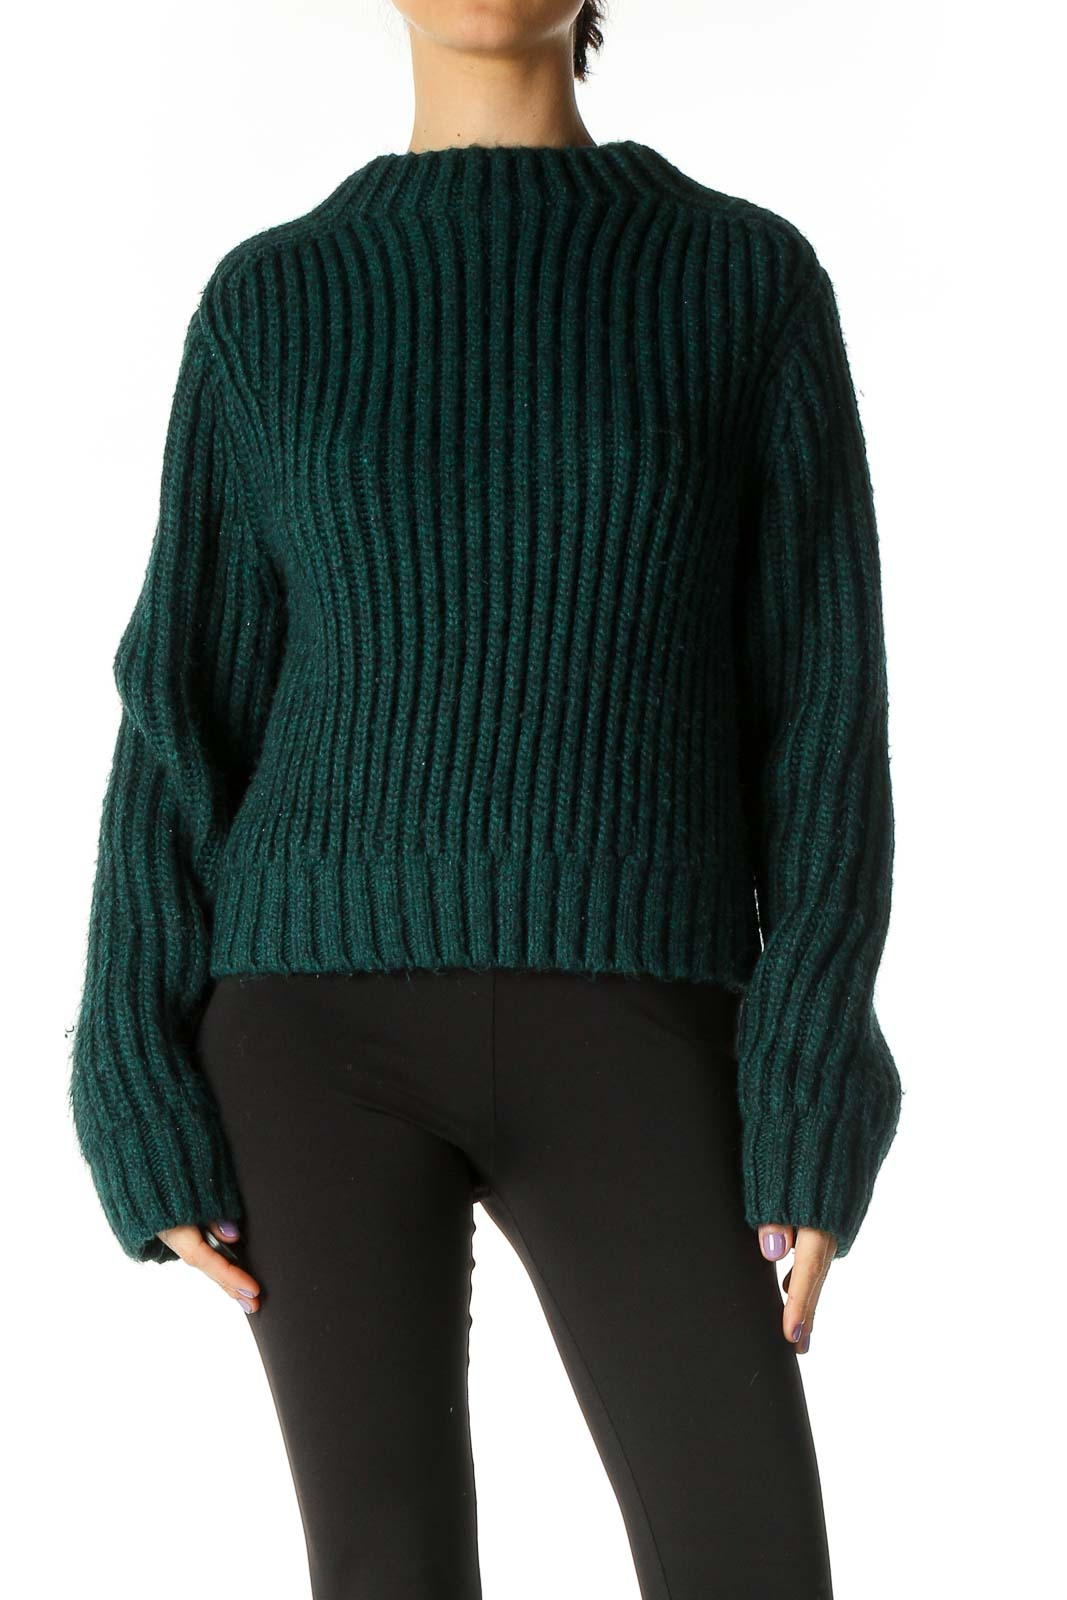 Green Solid Retro Sweater Front